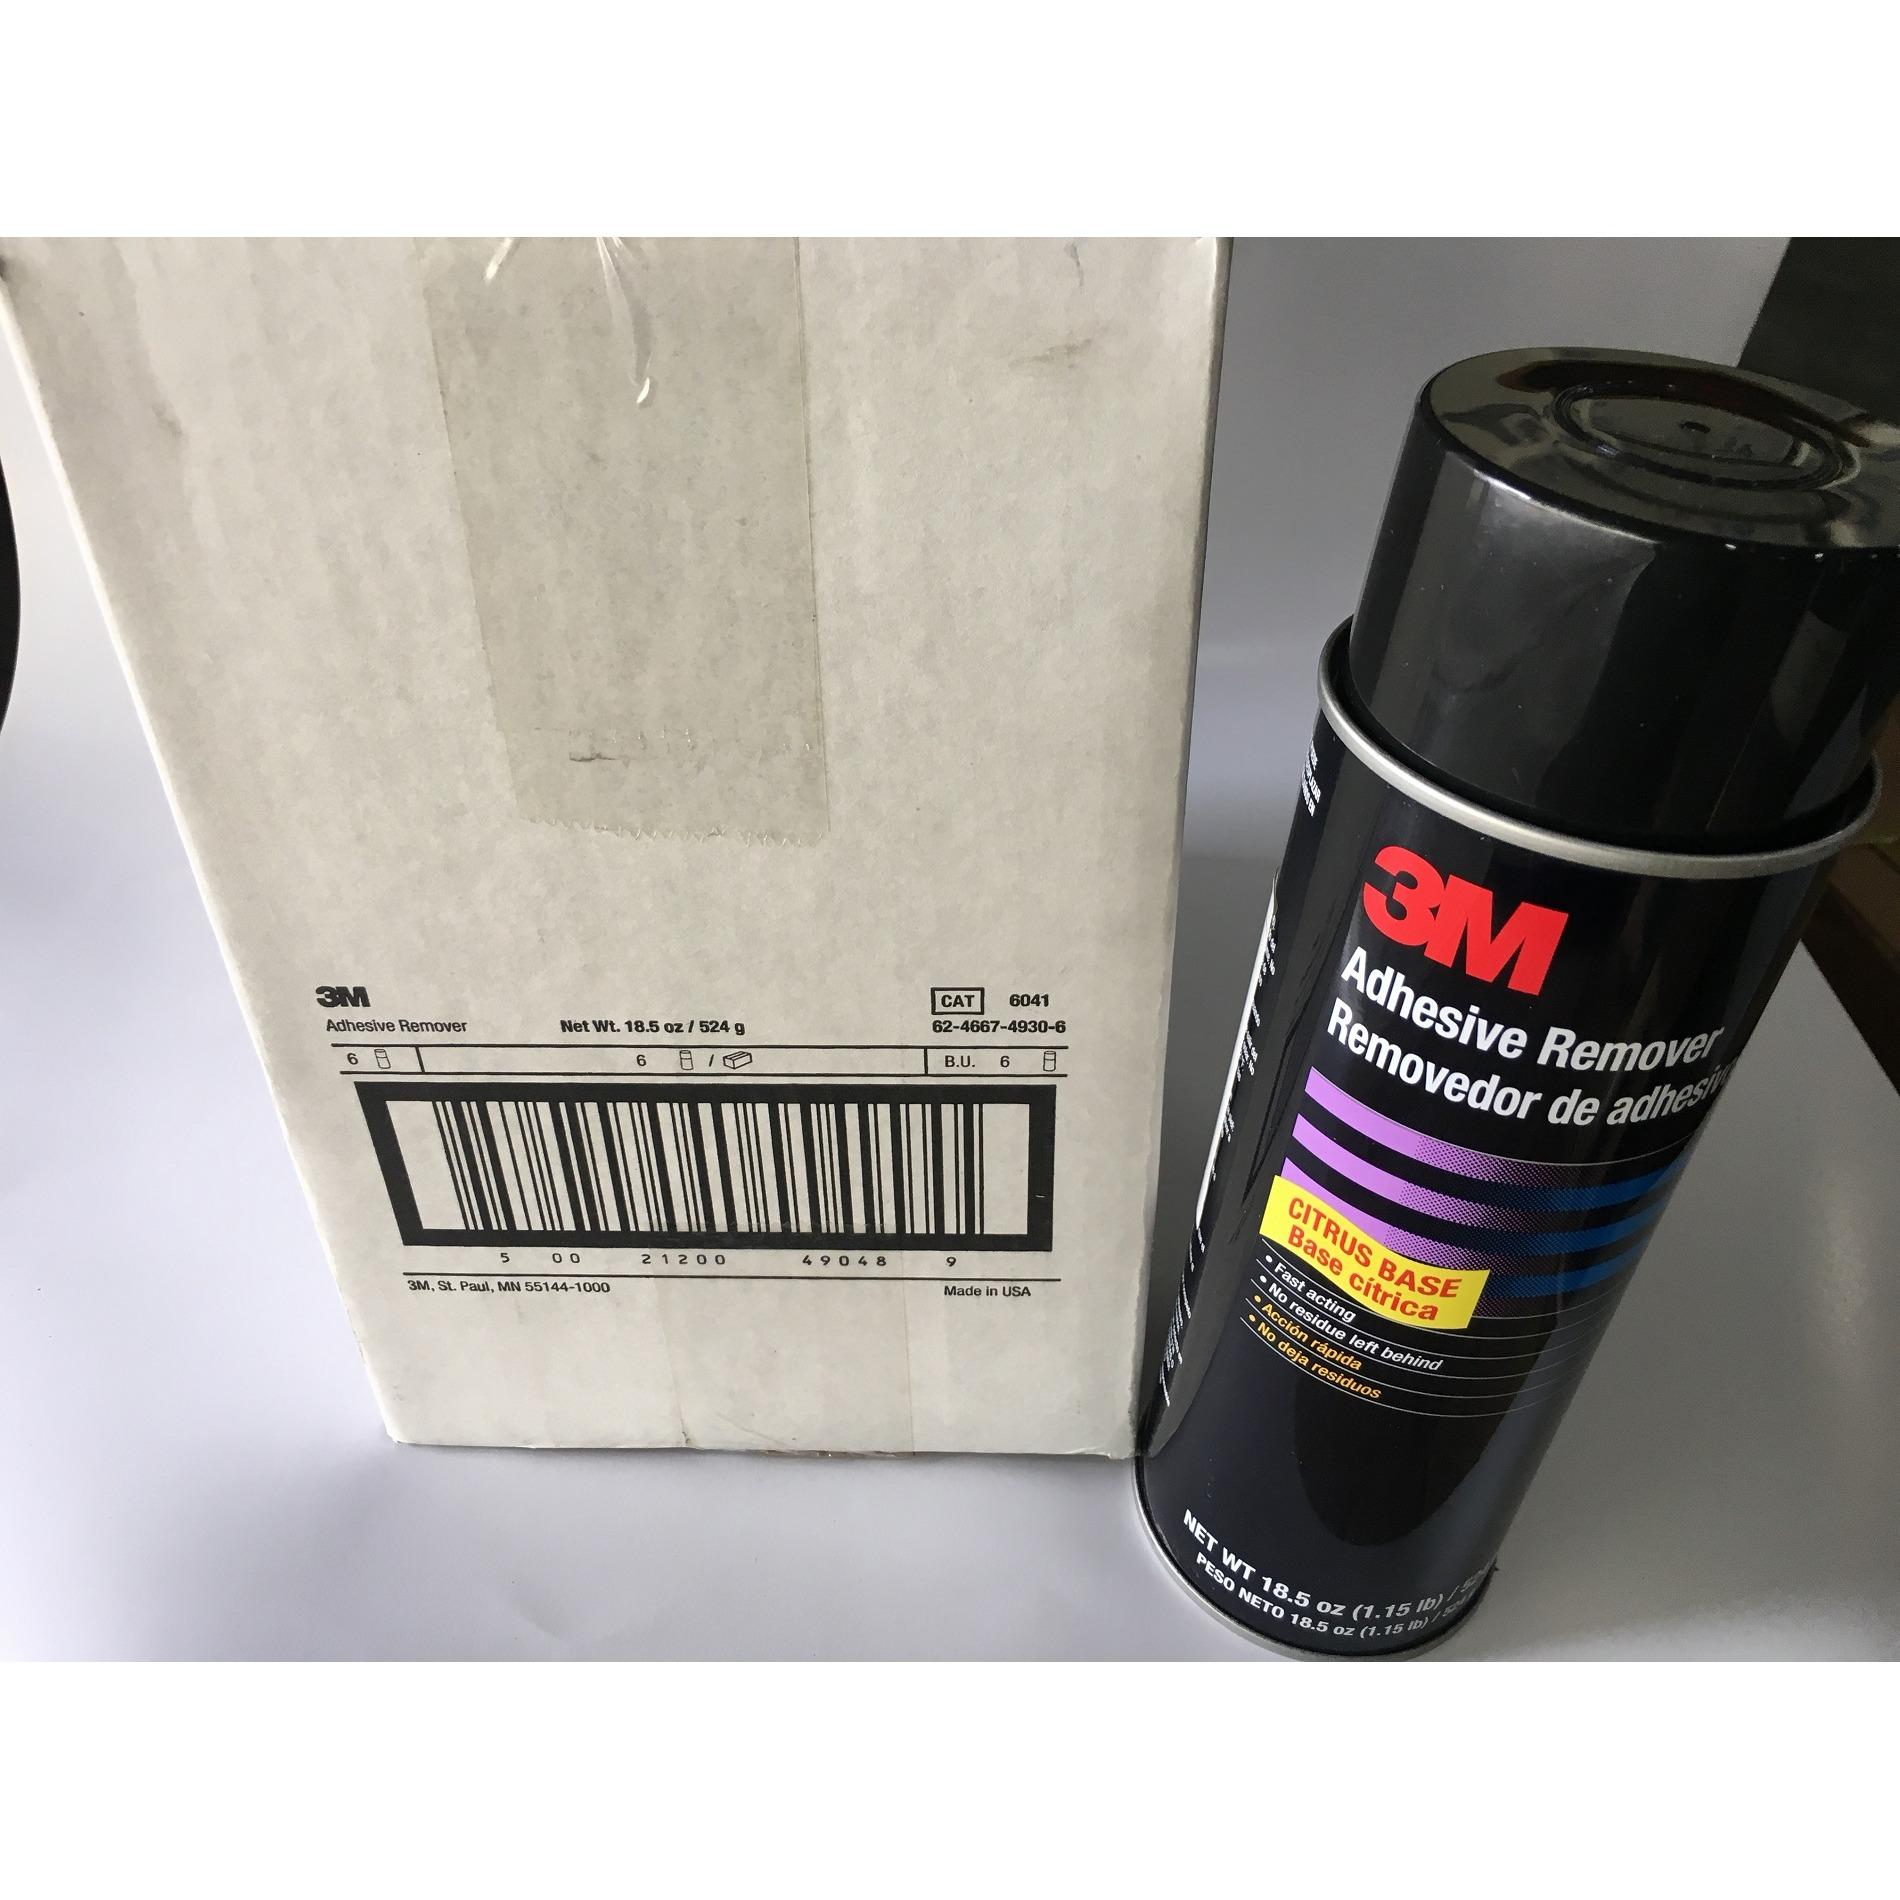 3m Adhesive Remover - 24 Fl Oz (6can/case) 6041 By Masstec.